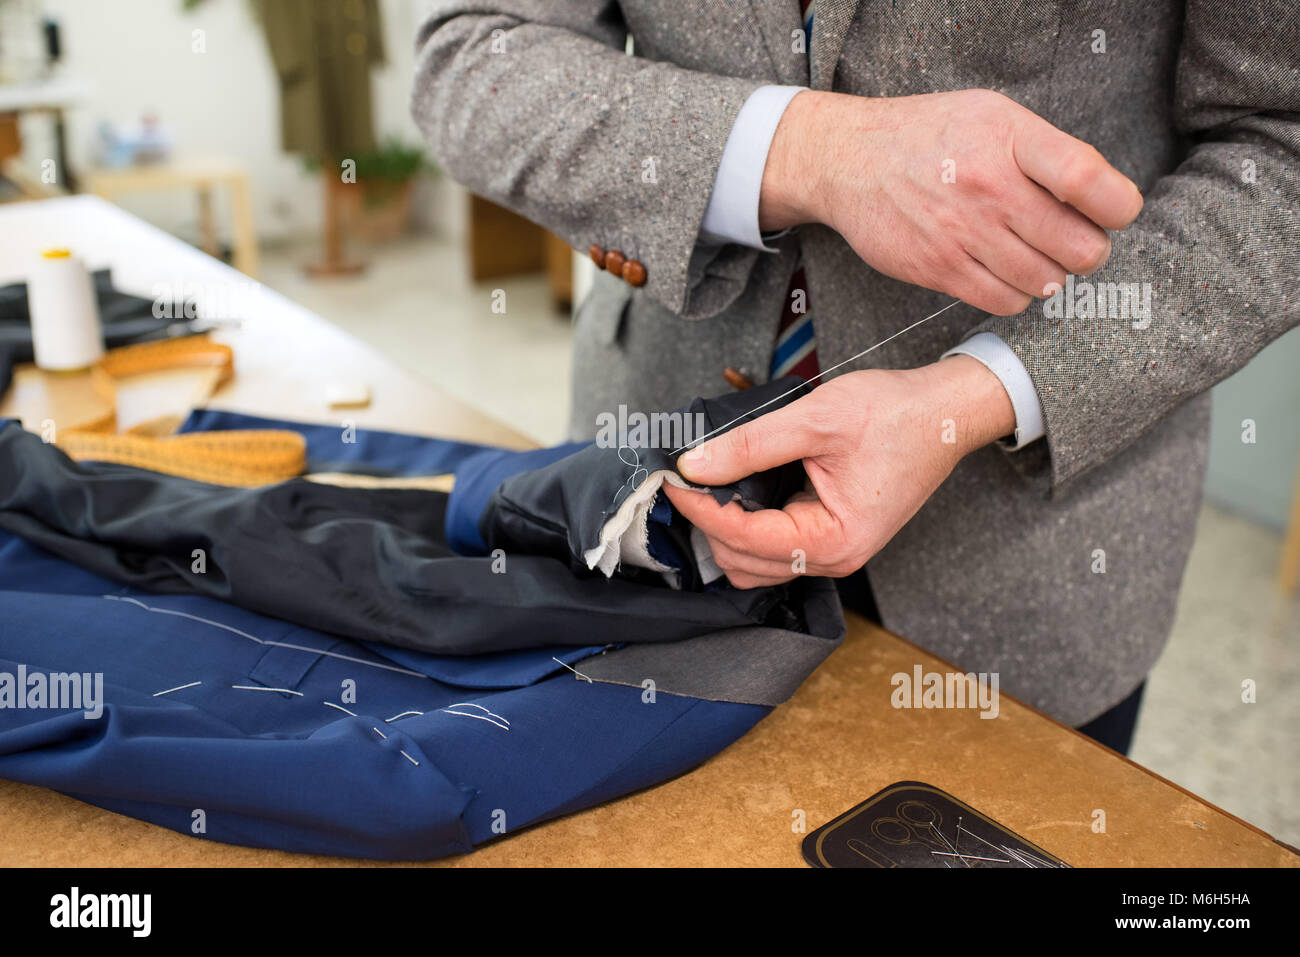 Work in progress with a tailor hand sewing a new blue jacket while standing at a work table in his workshop in a - Stock Image